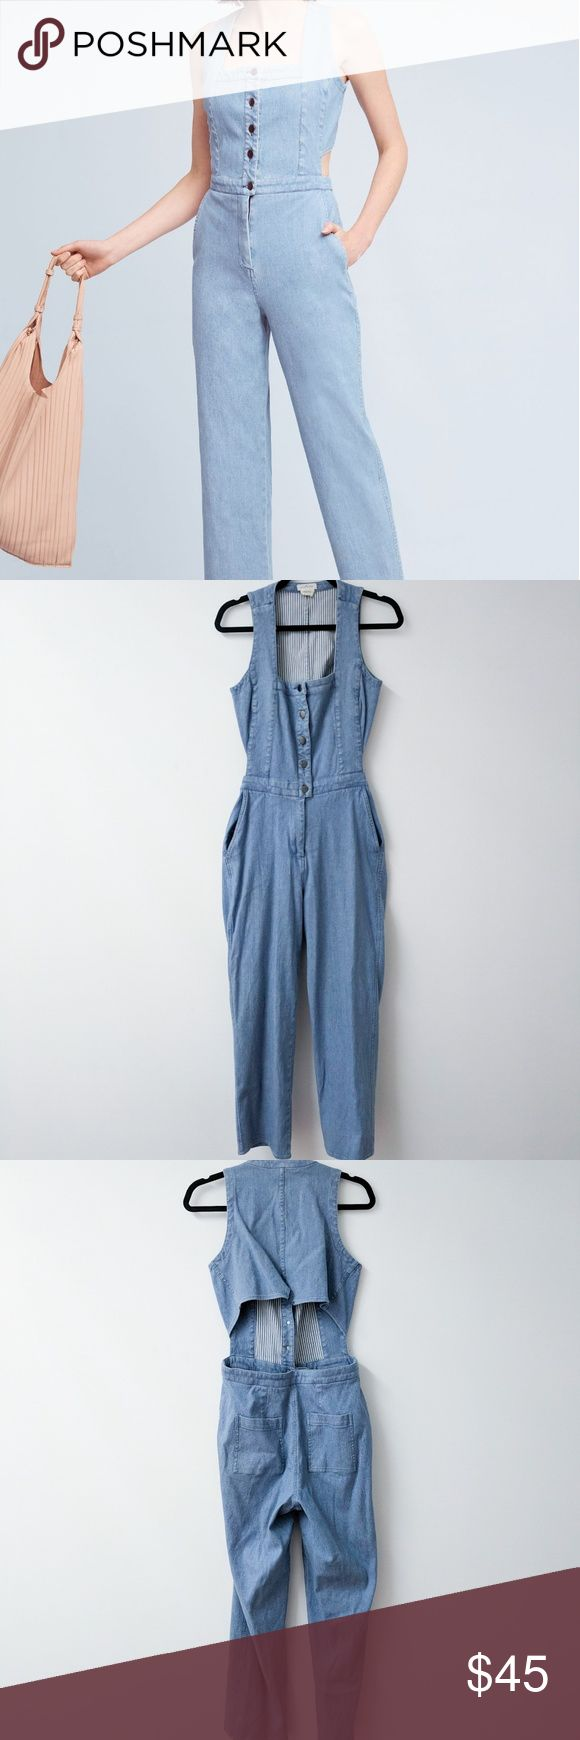 """Anthropologie Cornflower Denim Jumpsuit 6 Petite Amazing Anthropologie denim jumpsuit! Size 6P, however, I'm 5'10"""" and this length worked for me? Great for longer torsos. Check the details in the last photos for more info on measurements. The back is open and I receive endless compliments when wearing this. Worn maybe 5 times? My size changed so I no longer fit. Thanks for looking! 👽✌️ Anthropologie Pants Jumpsuits & Rompers"""